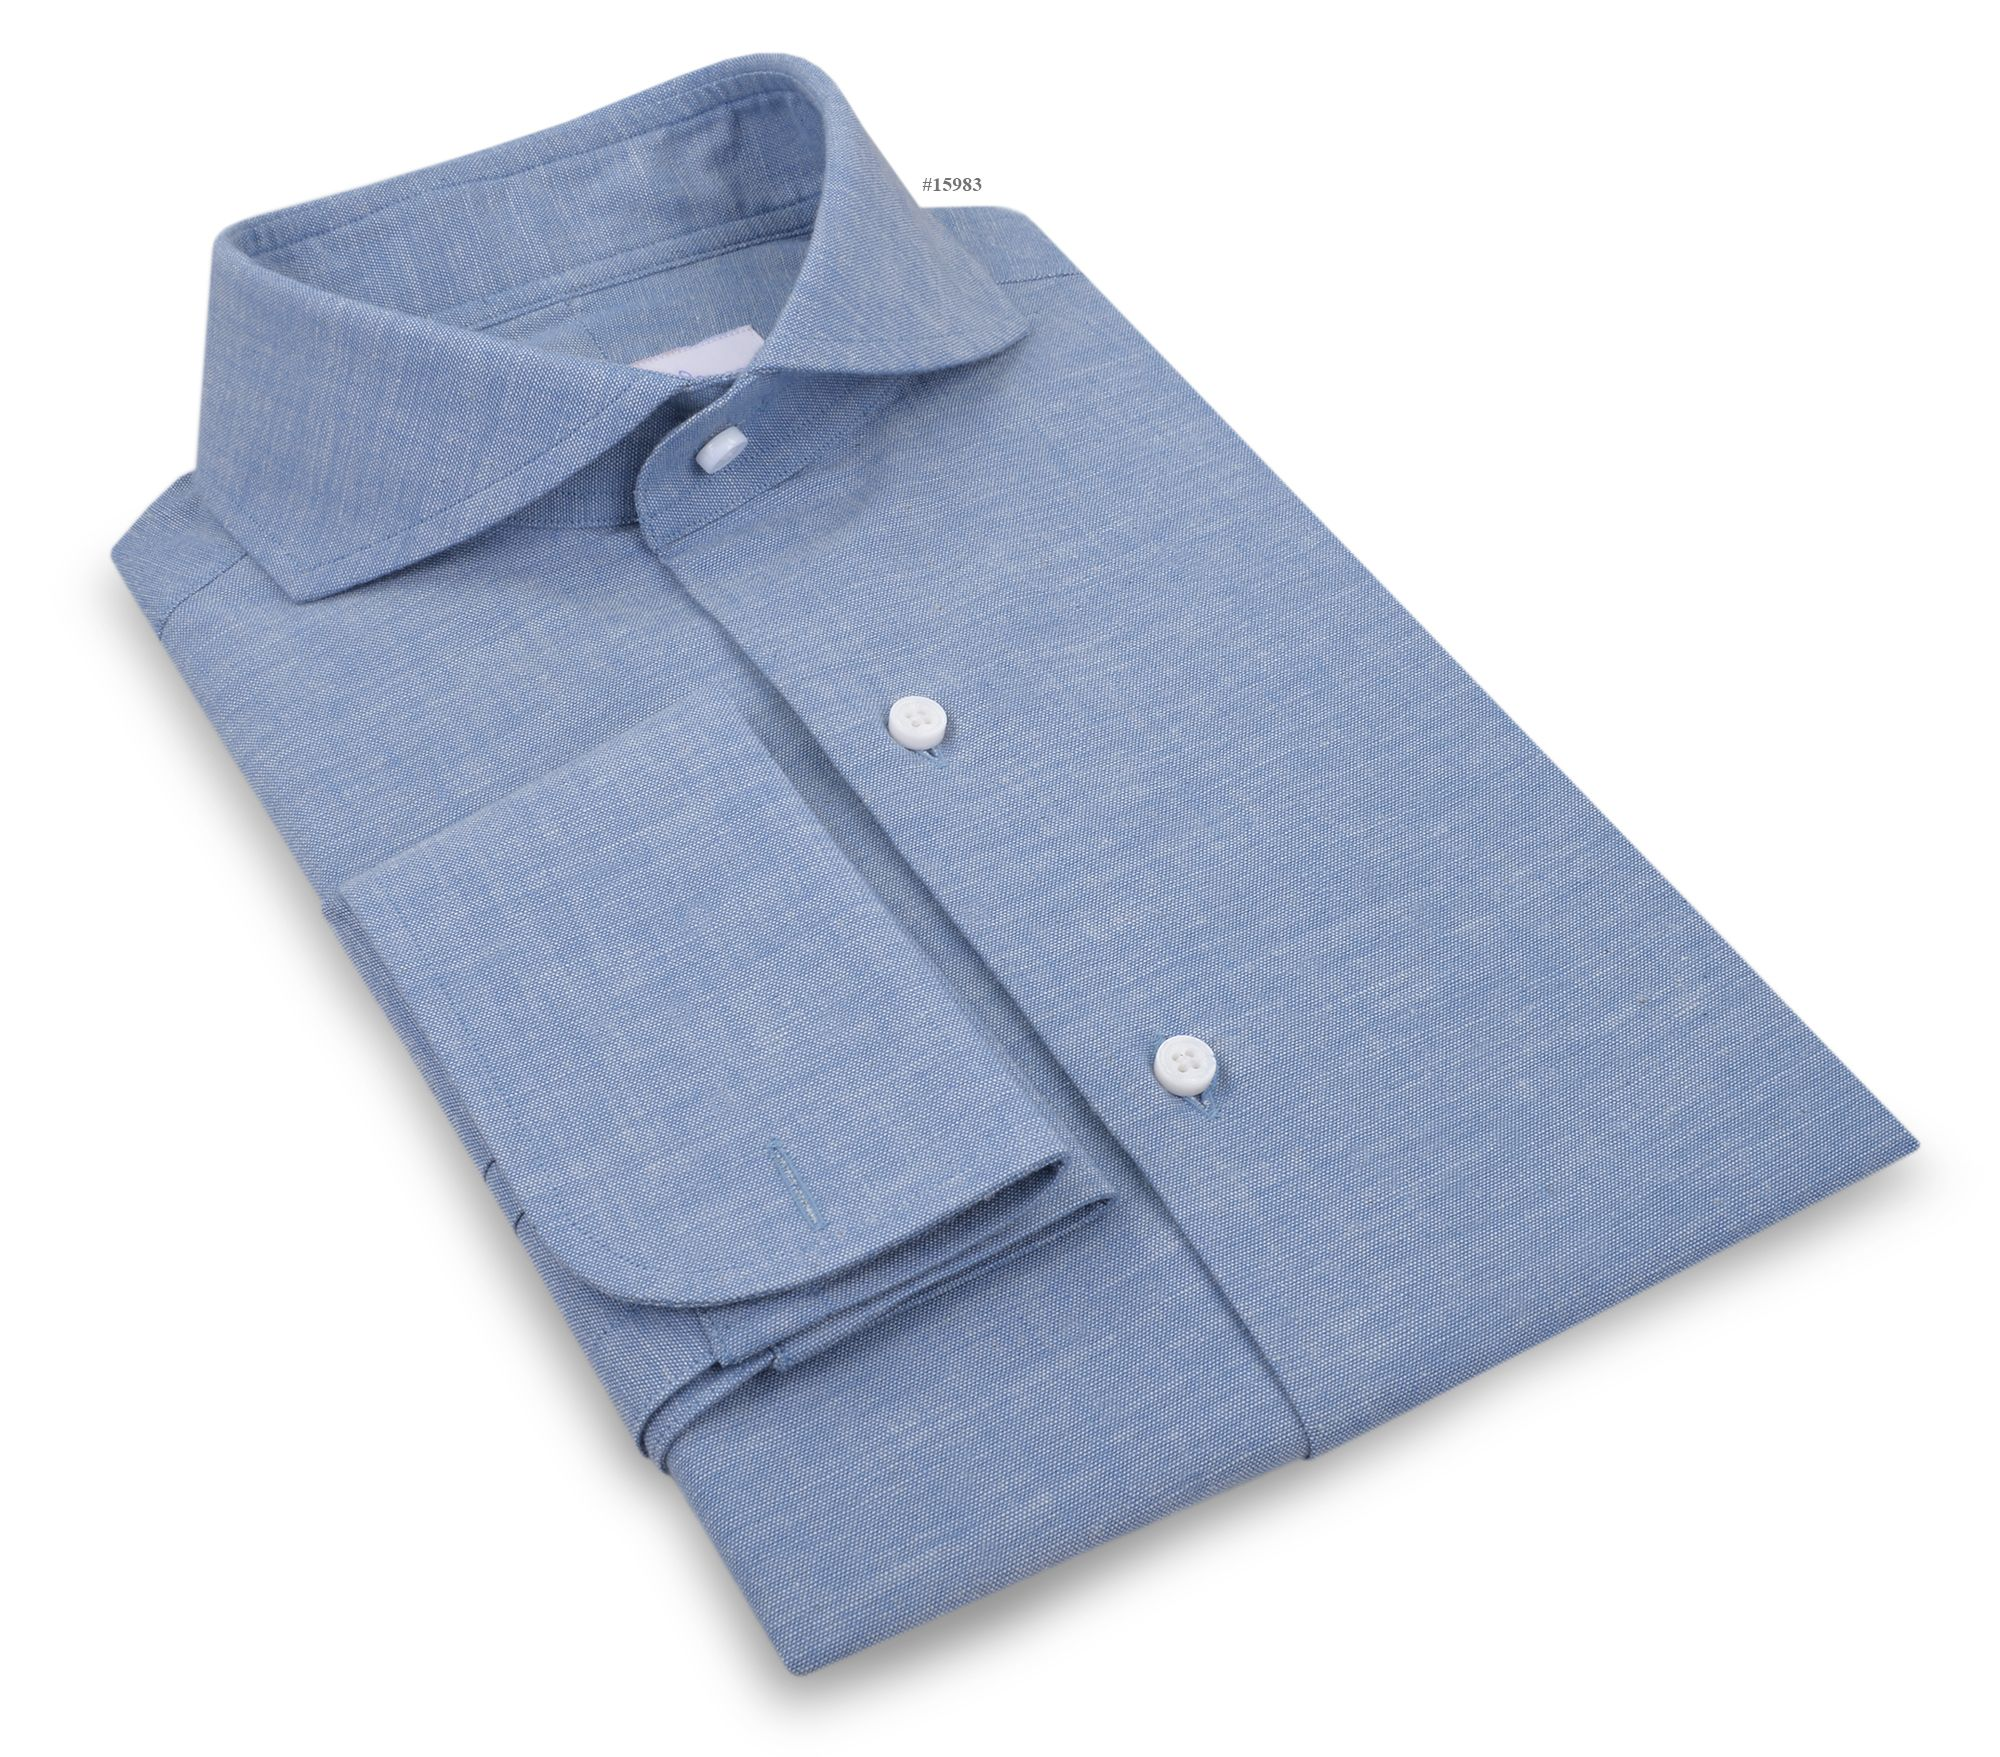 Luxire dress shirt constructed in  Cotton-Linen Blue Chambray: http://custom.luxire.com/products/blue-chambray-linen  Consists of cutaway collar and french cuffs.